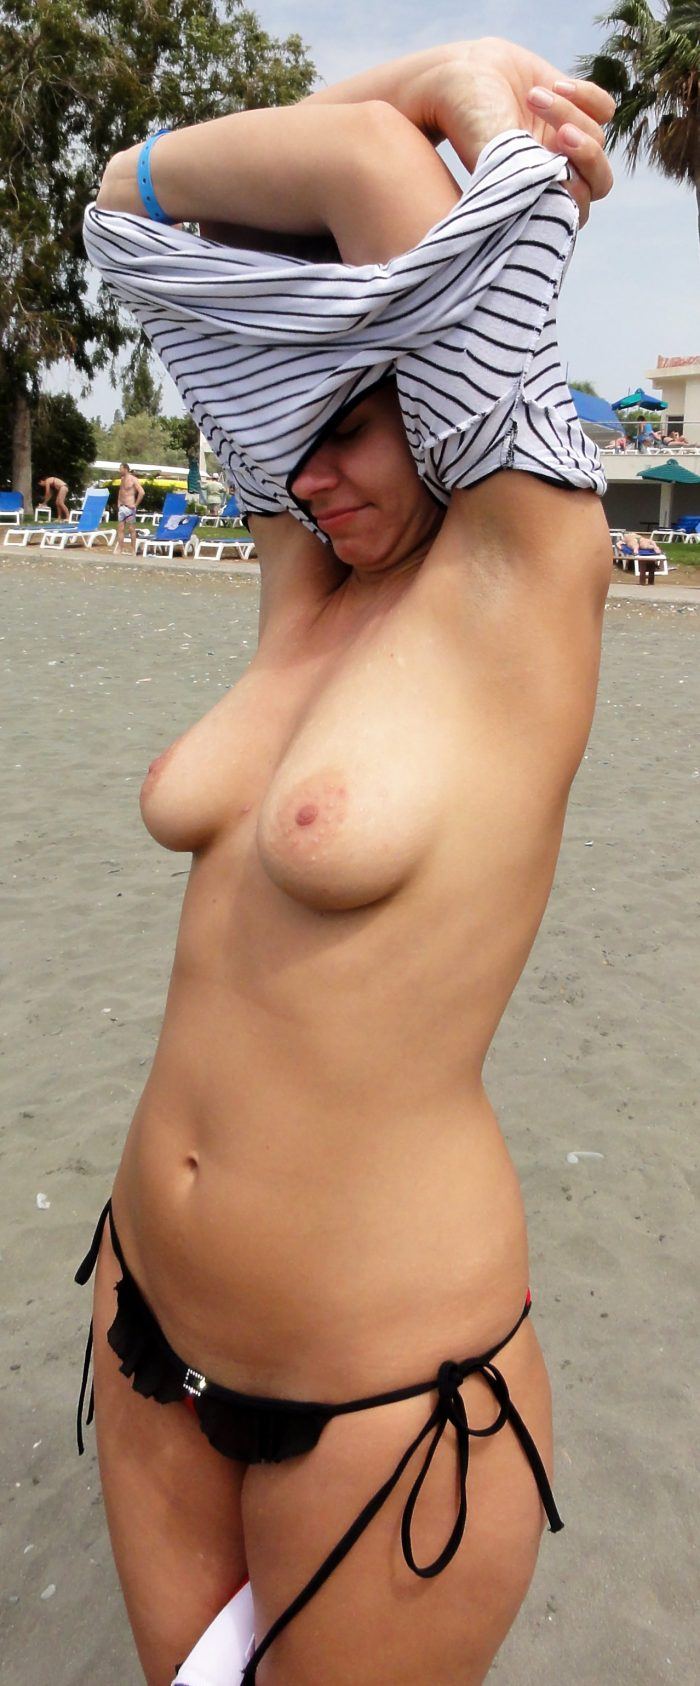 Sexy amateur topless outdoors